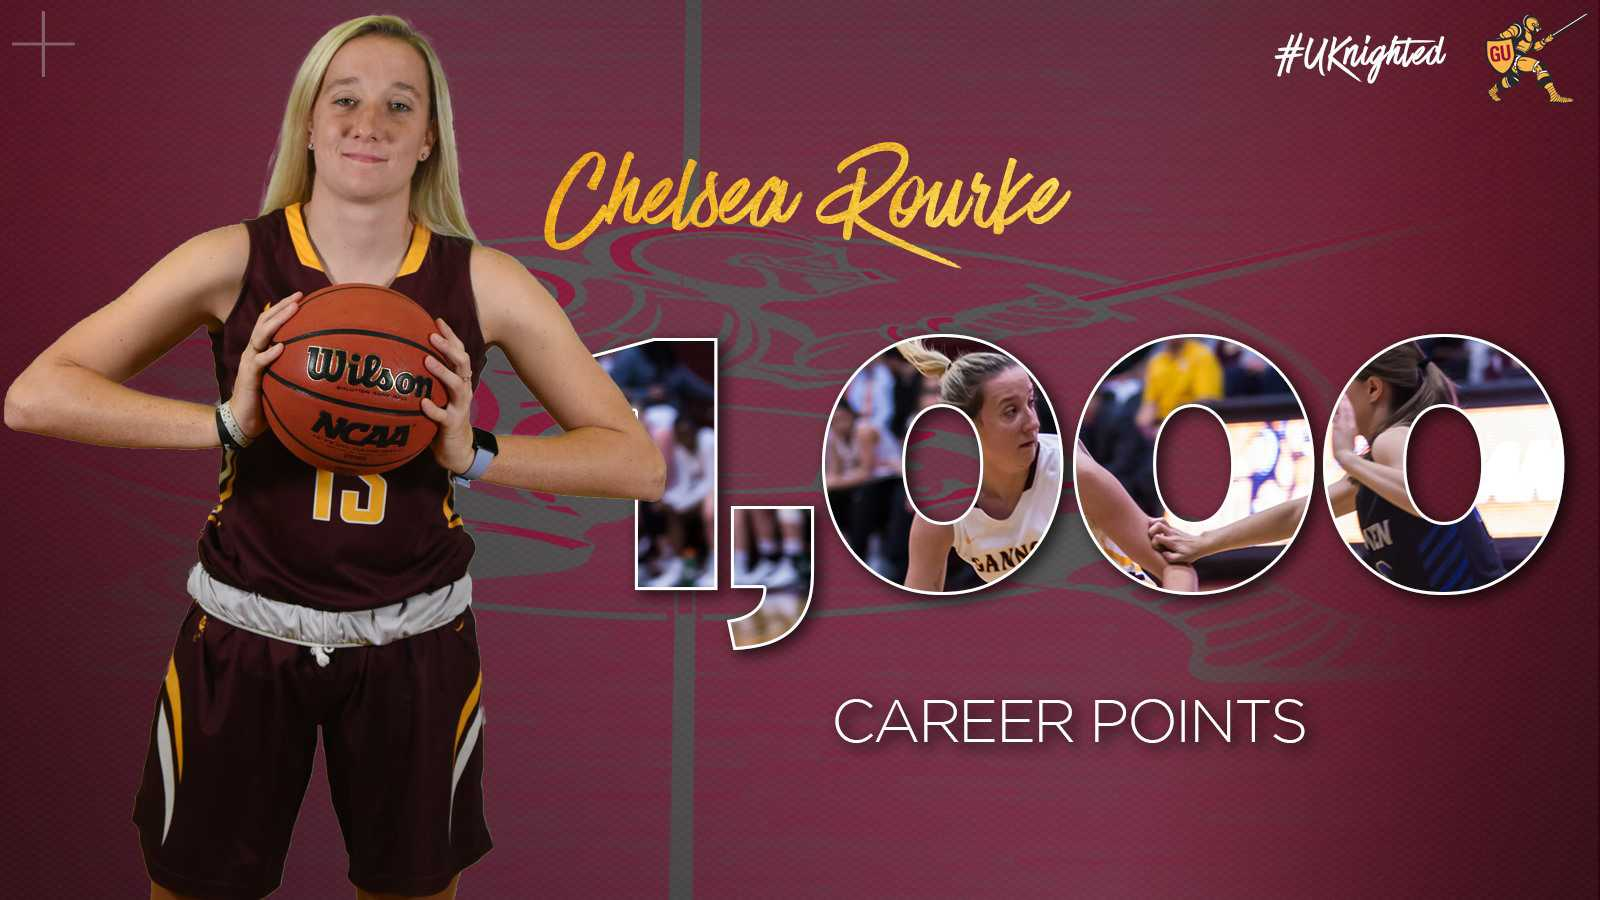 Senior Chelsea Rourke dominates on and off court